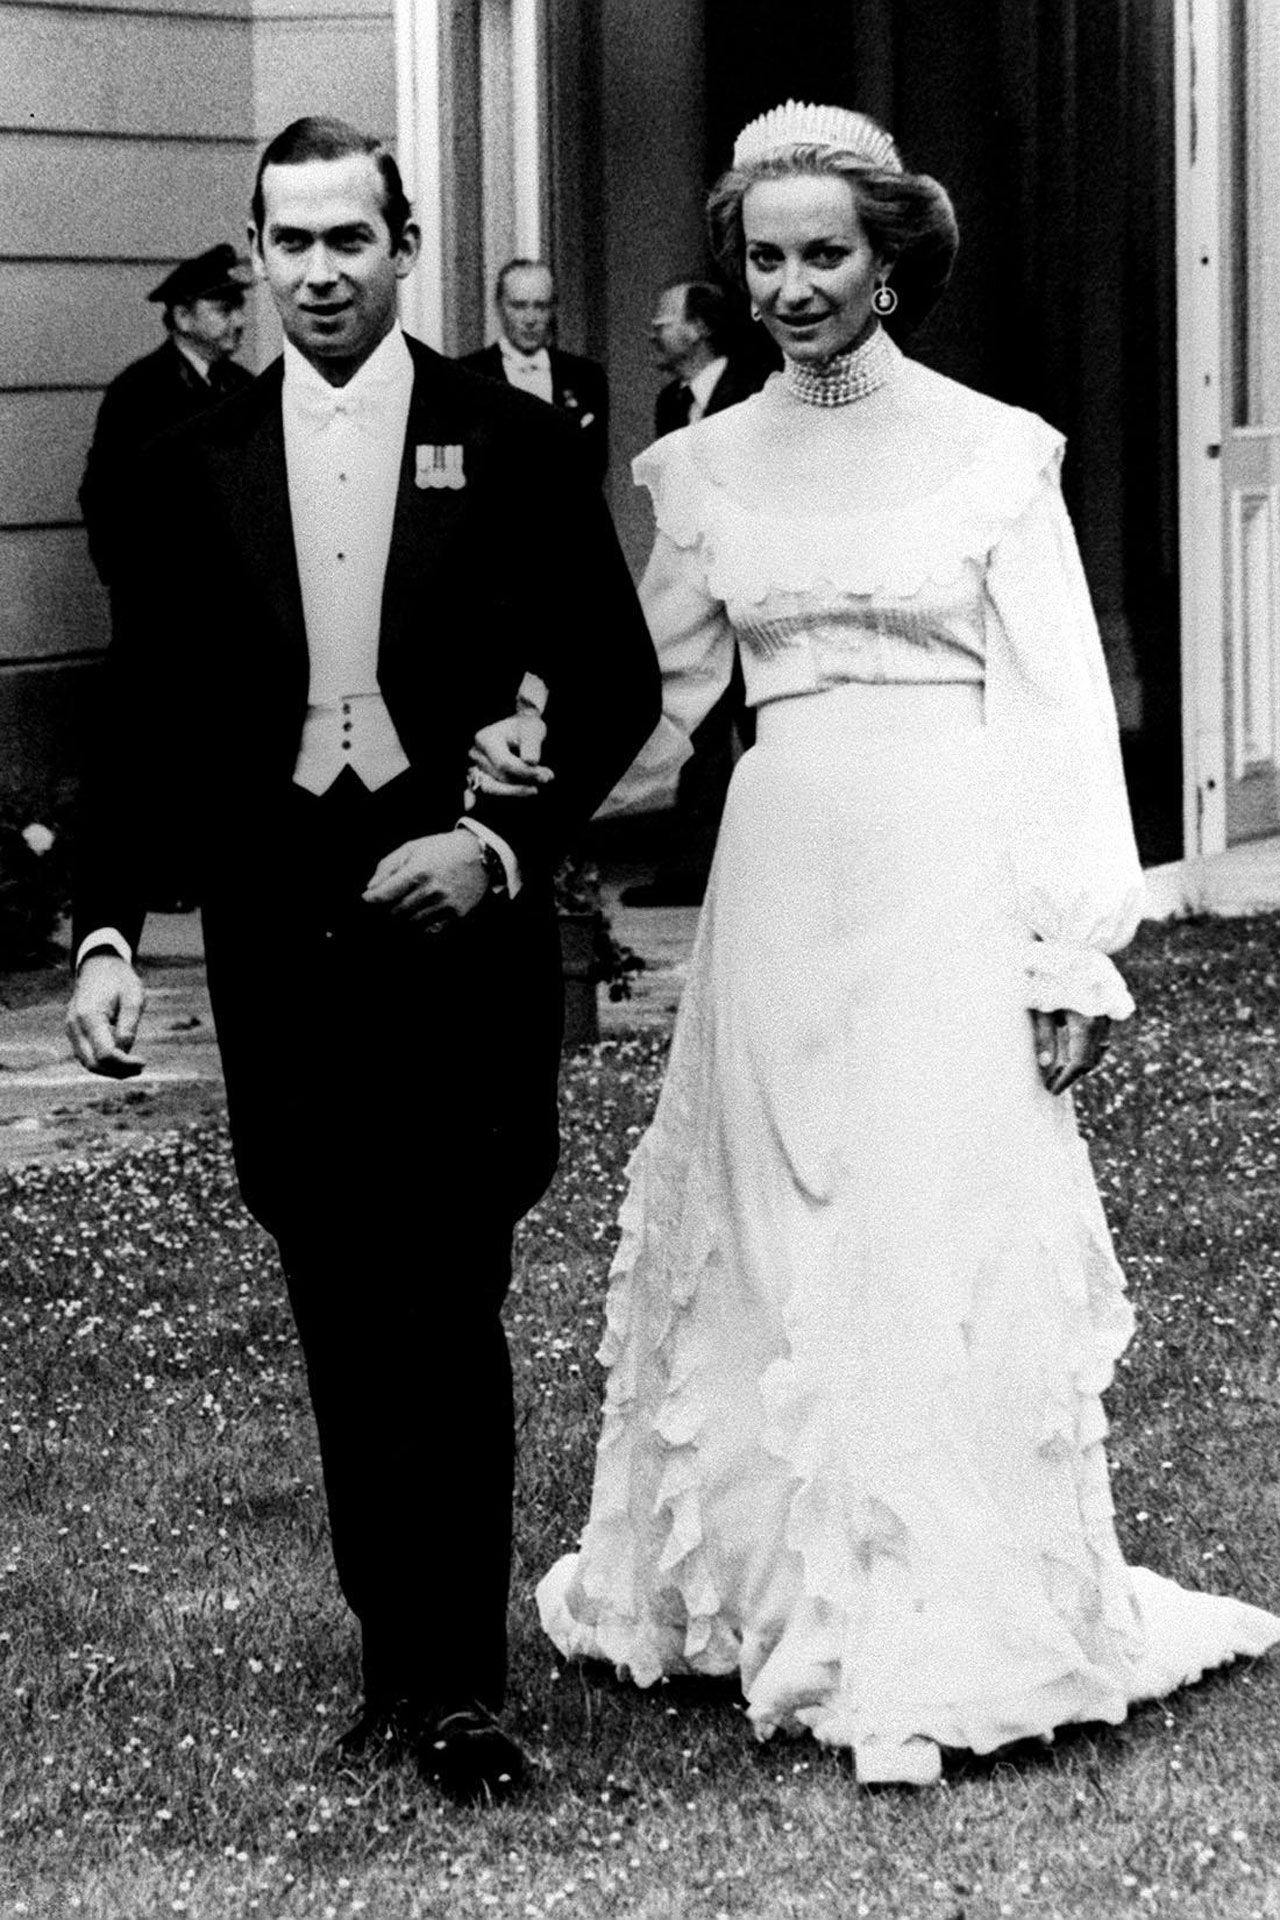 Royal Weddings Through The Years | Royal weddings, Royals and ...